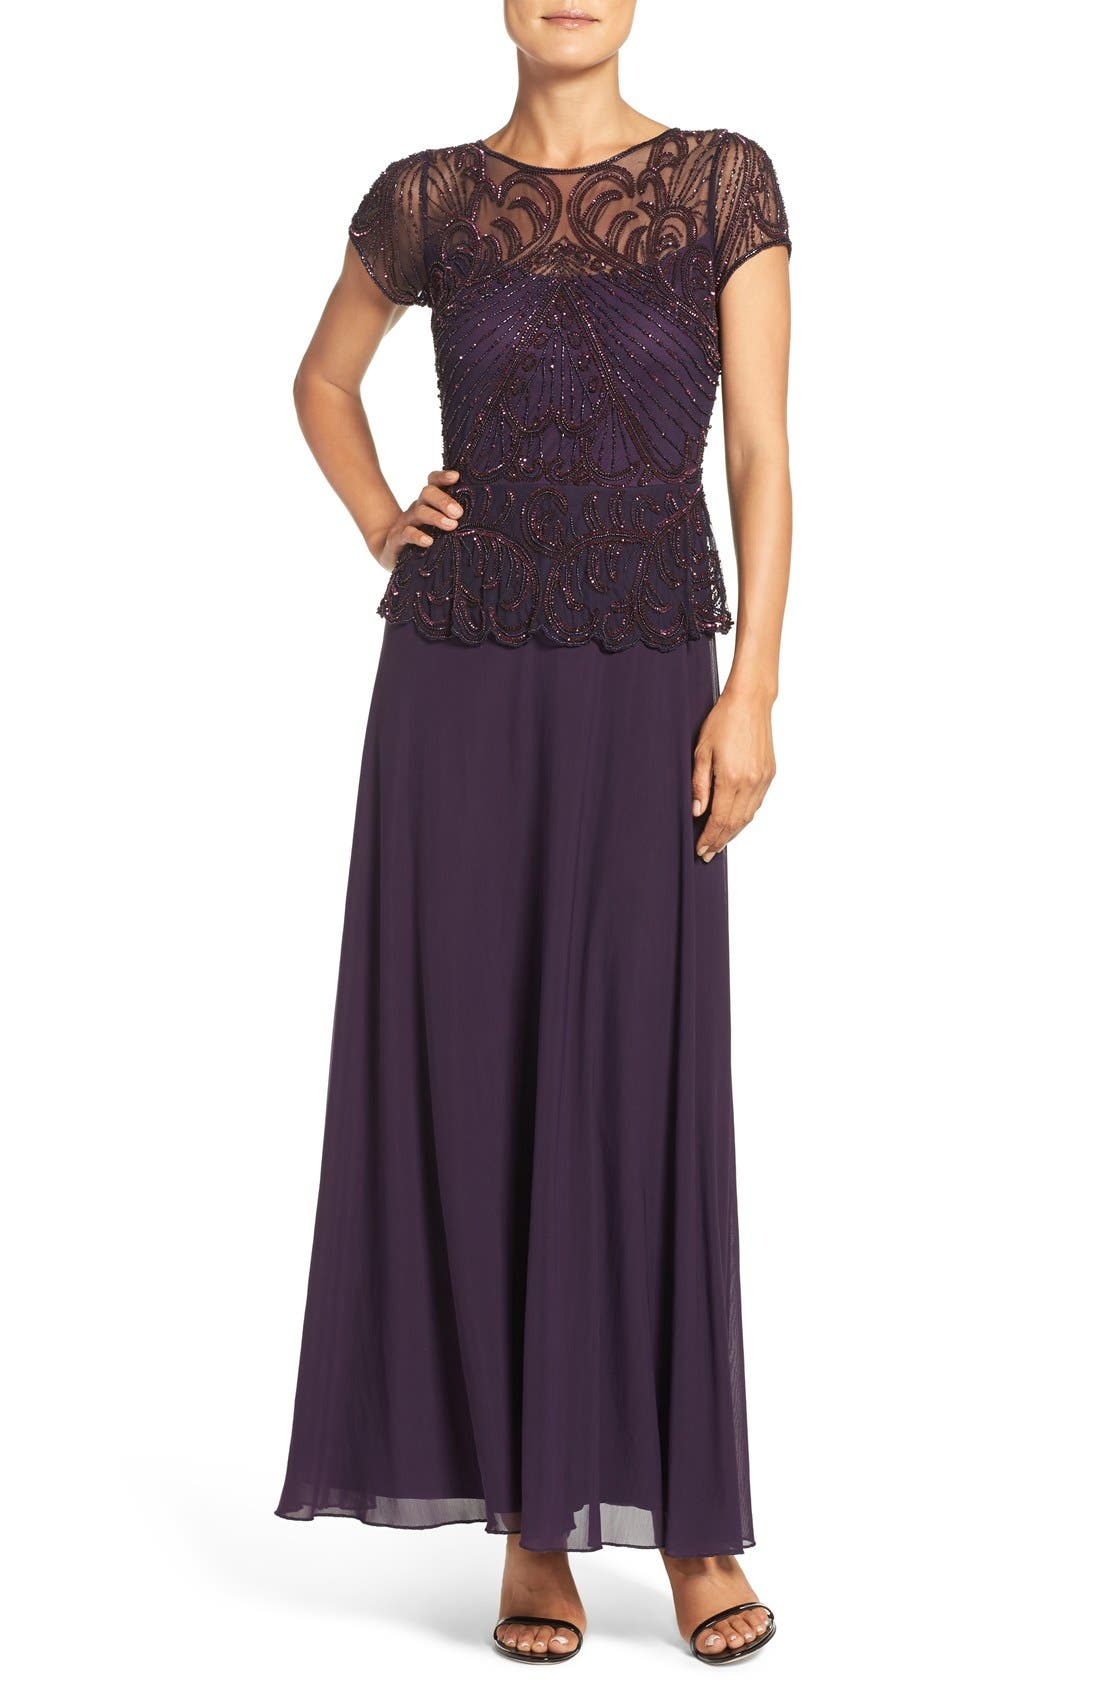 Main Image - Pisarro Nights Embellished Mesh Popover Gown